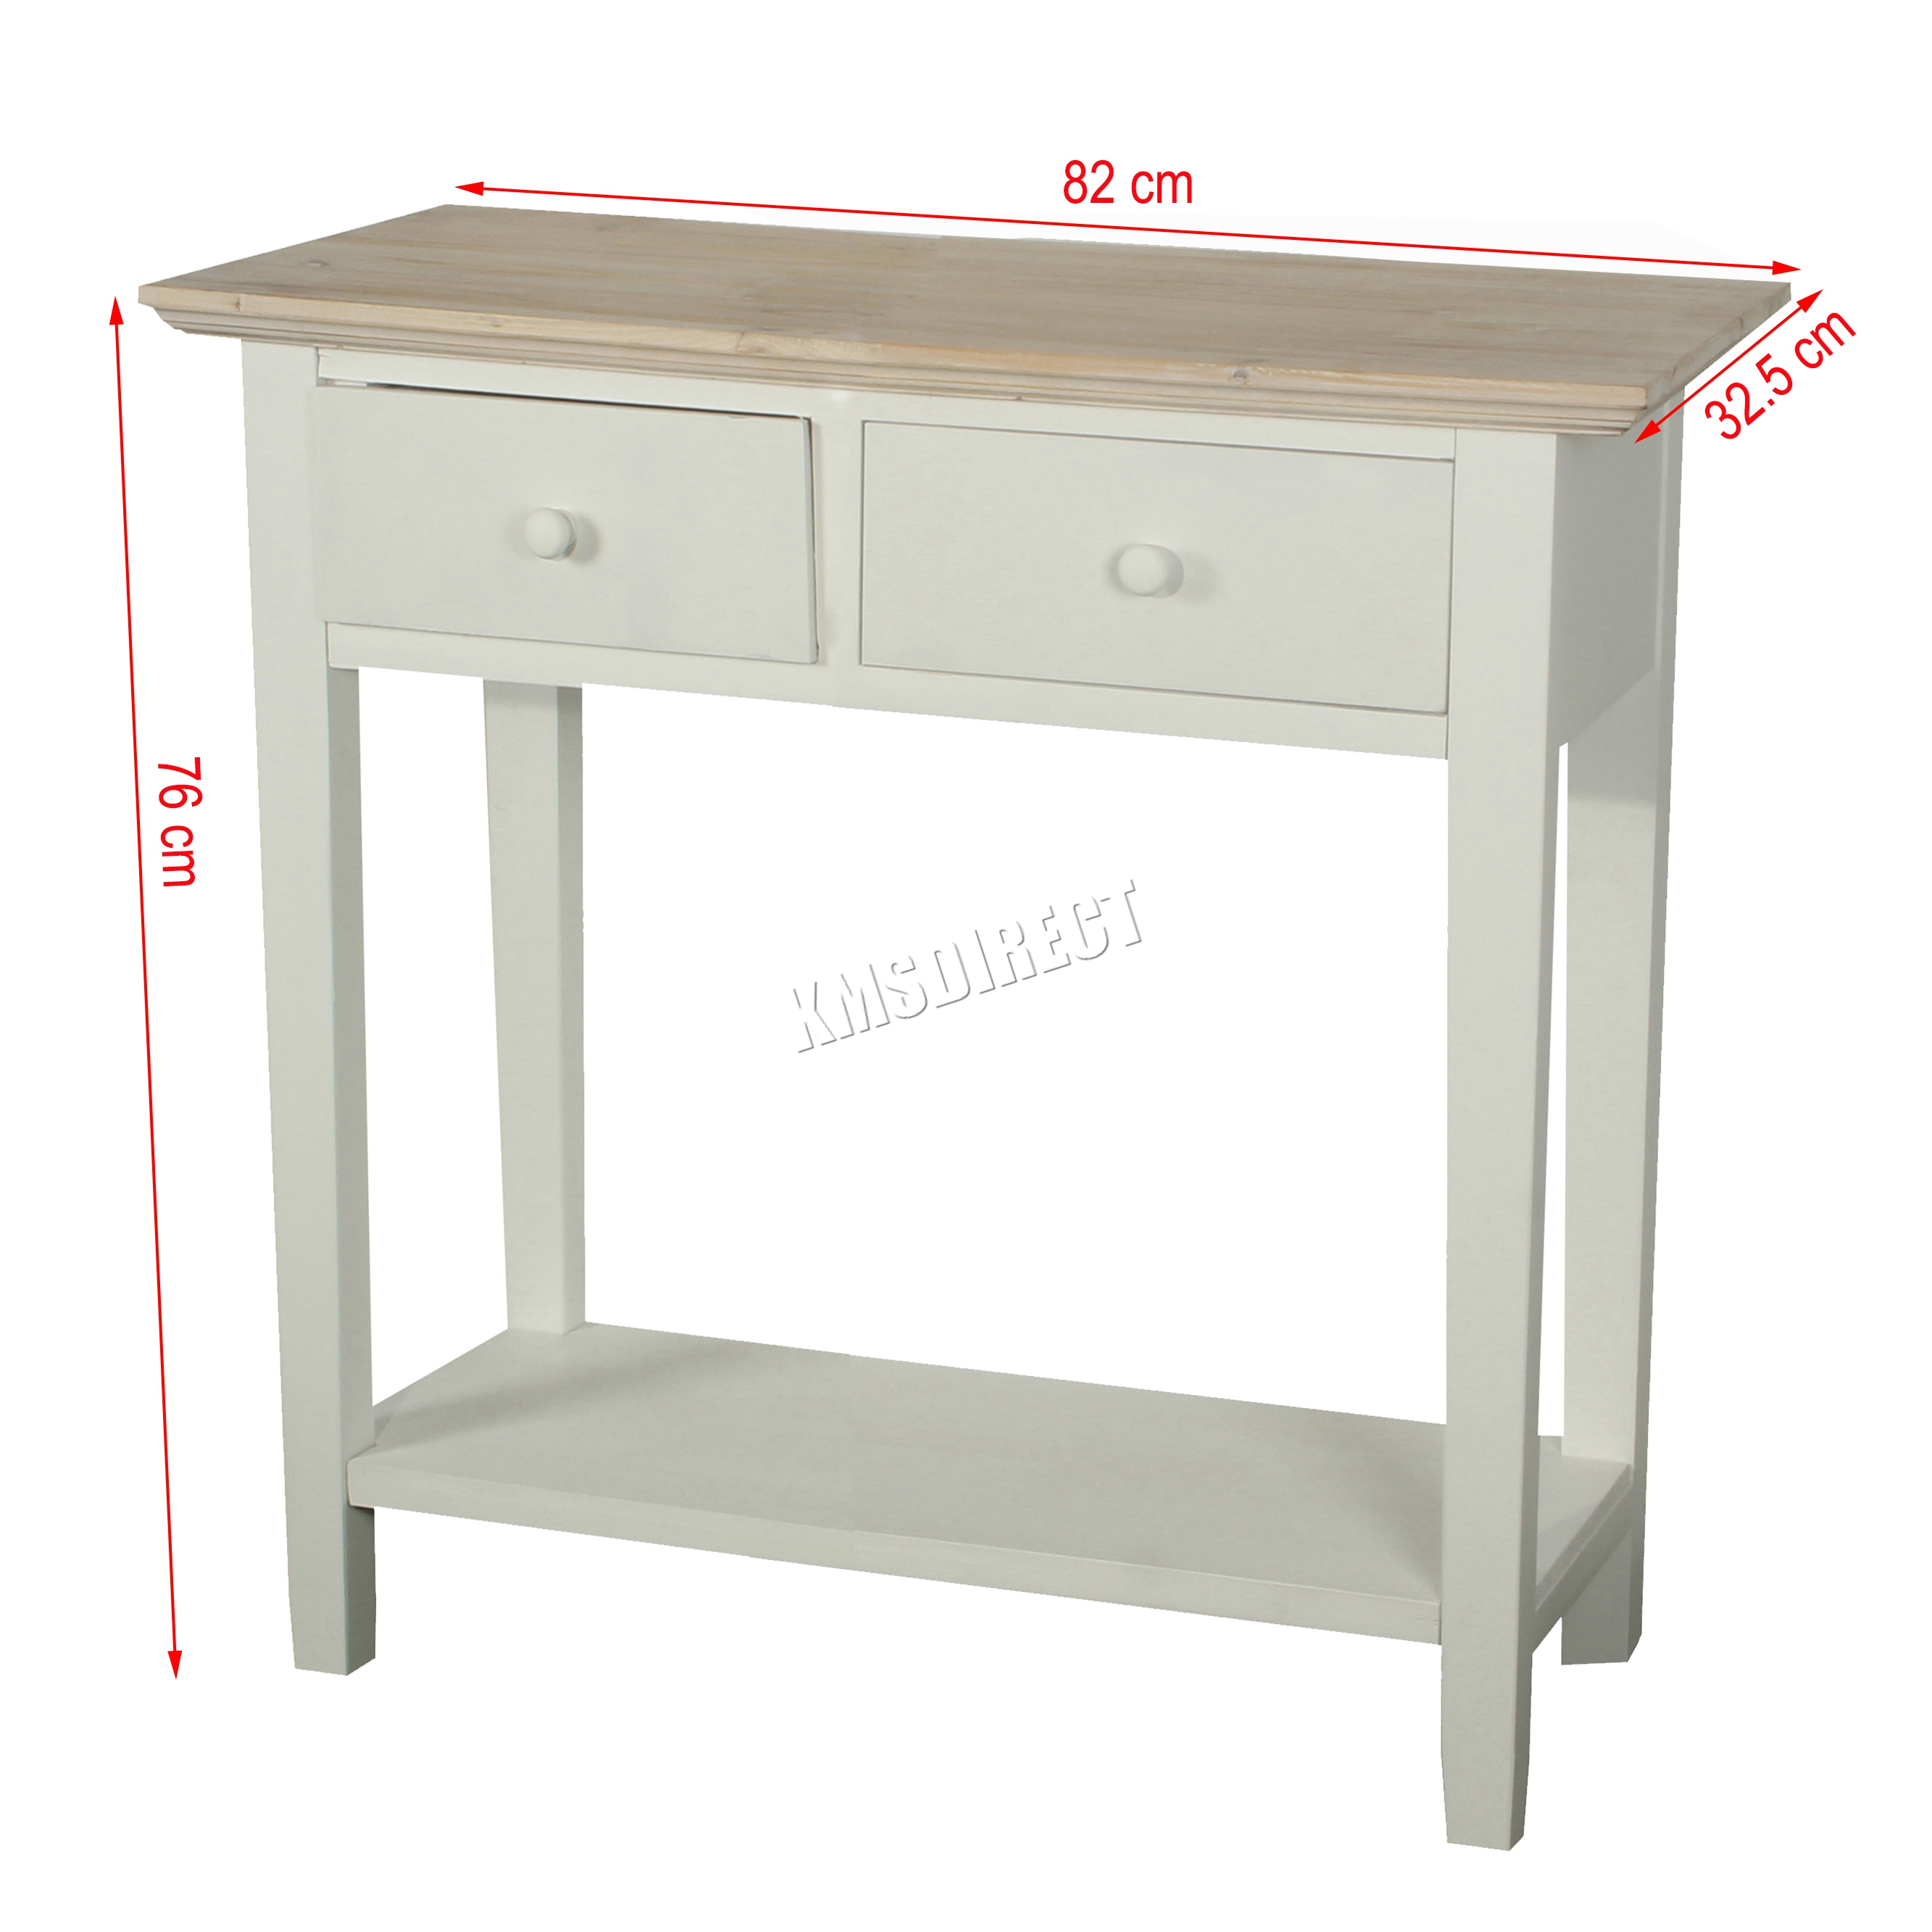 Kitchen Foyer Table : Foxhunter console table drawers wood hallway side